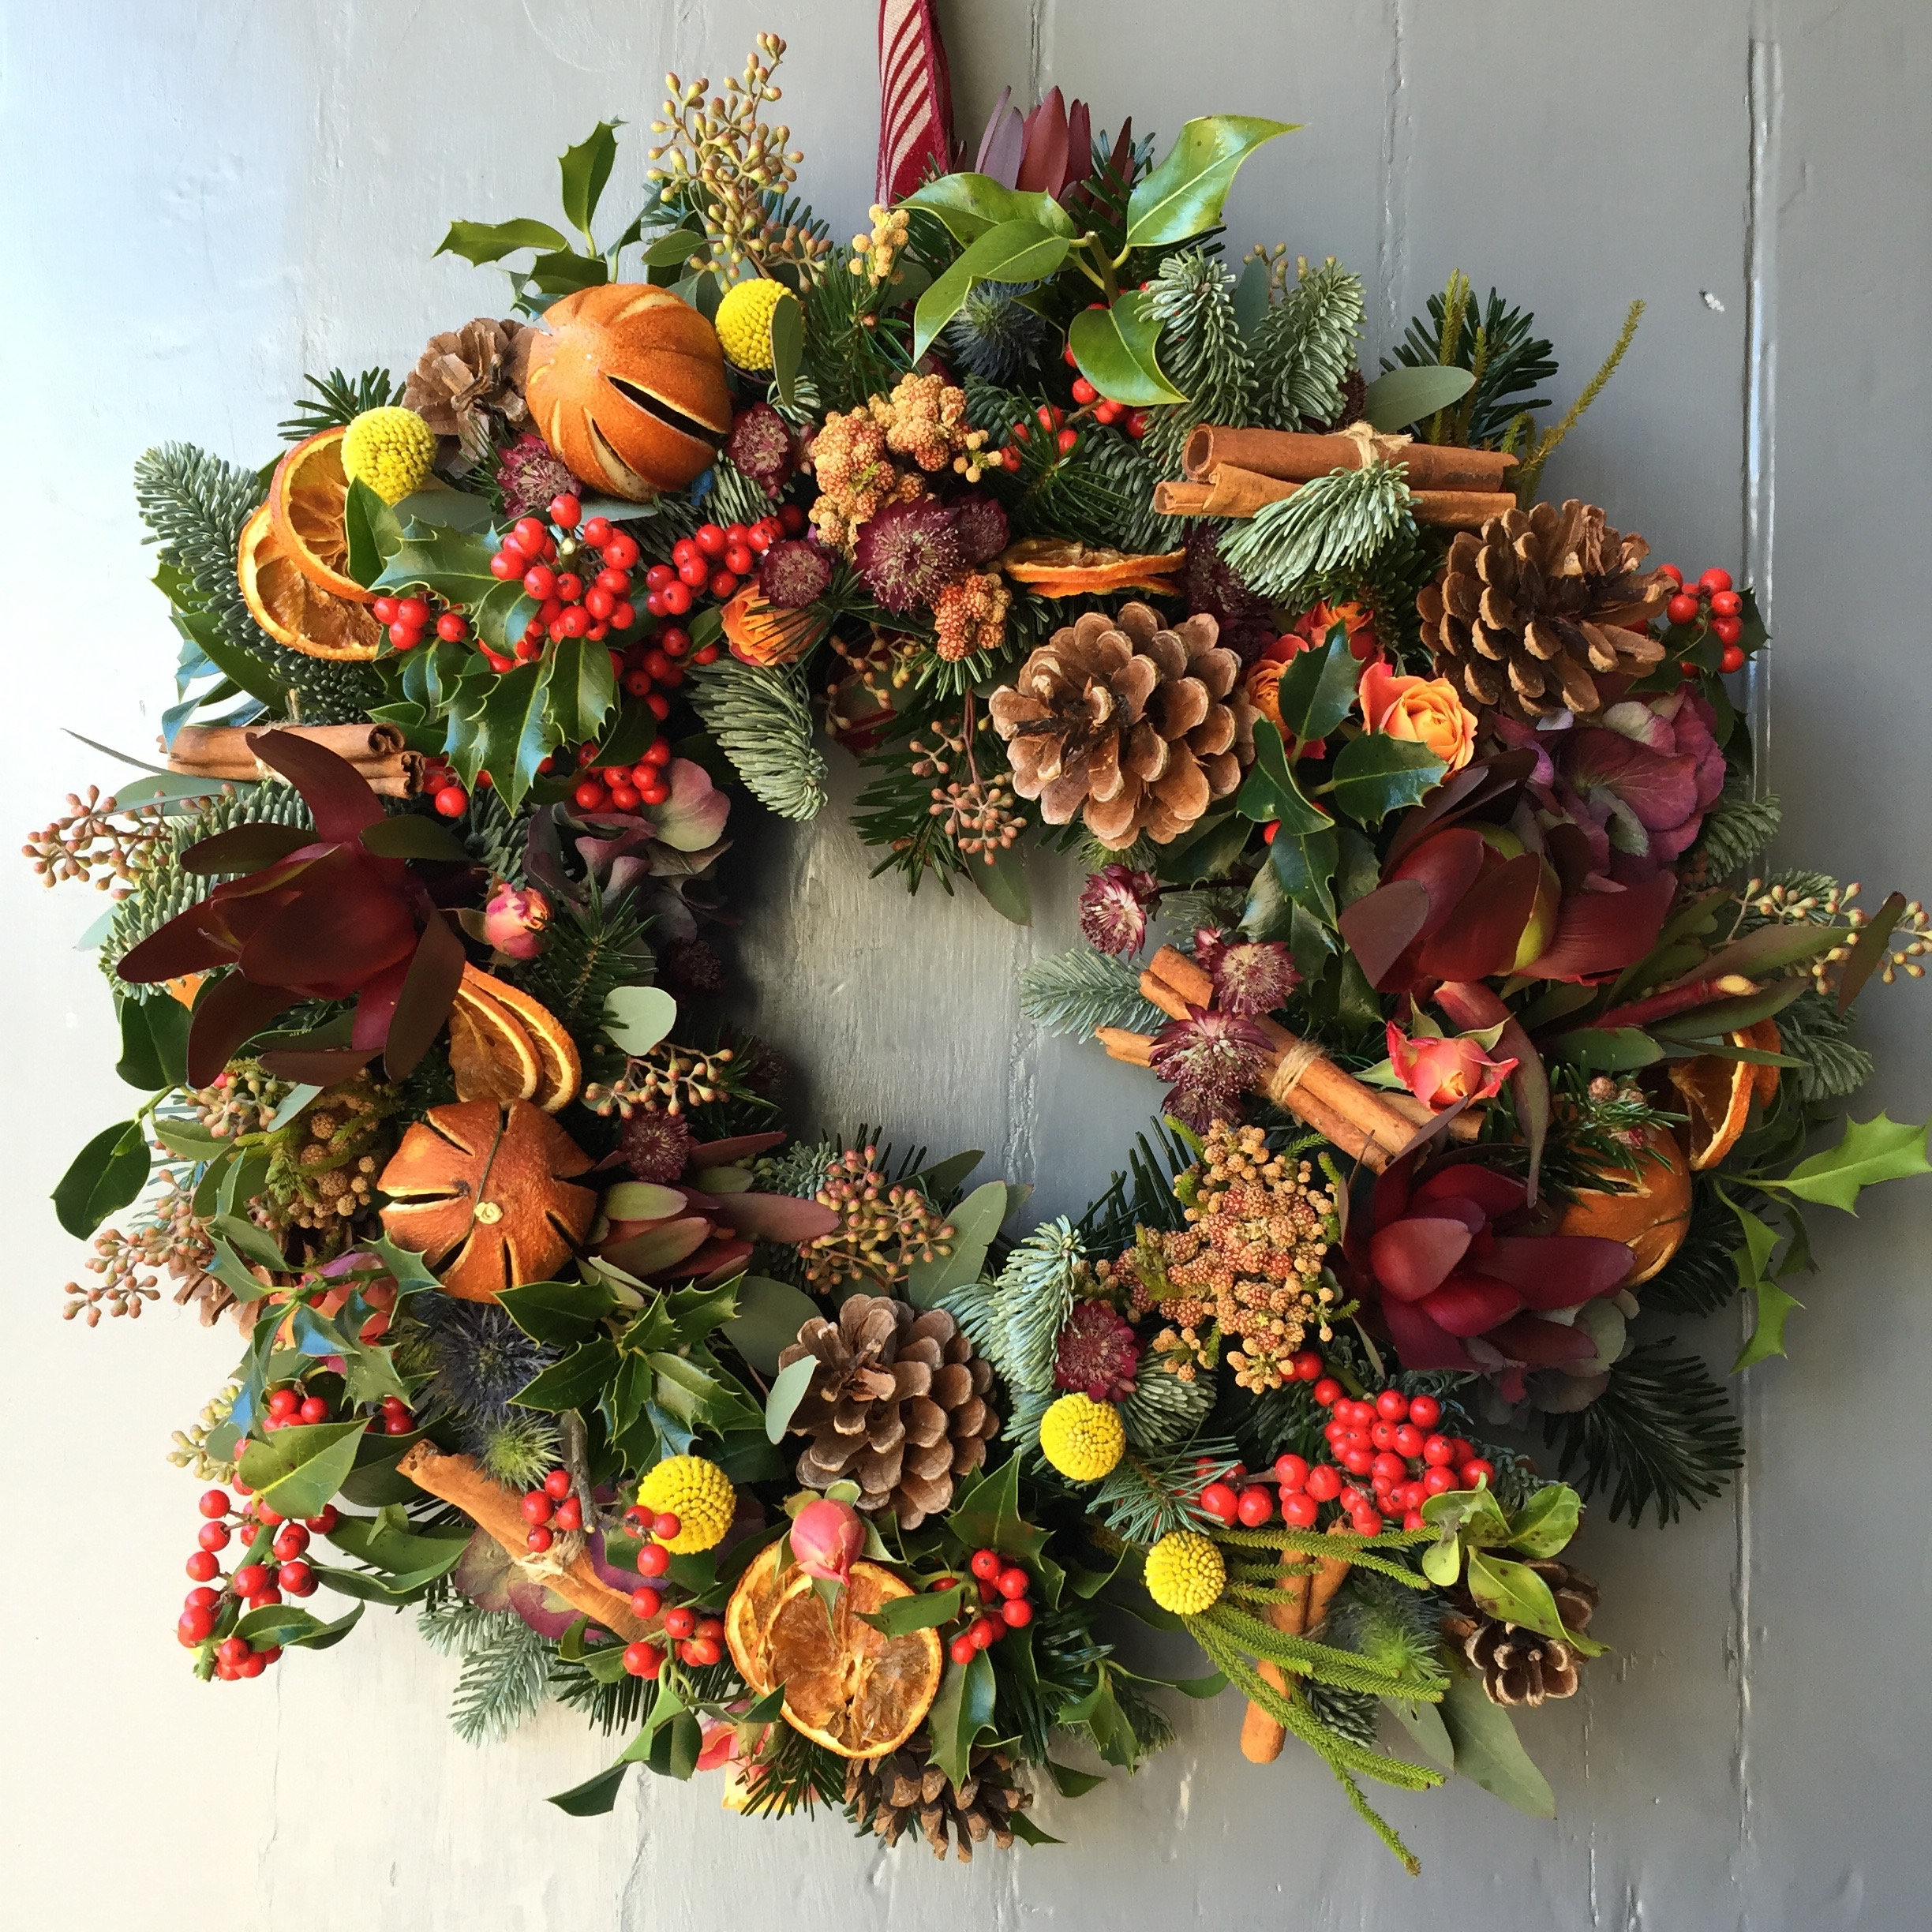 Image Christmas Wreath.Luxury Christmas Wreath Making With Afternoon Tea At The Woburn Hotel